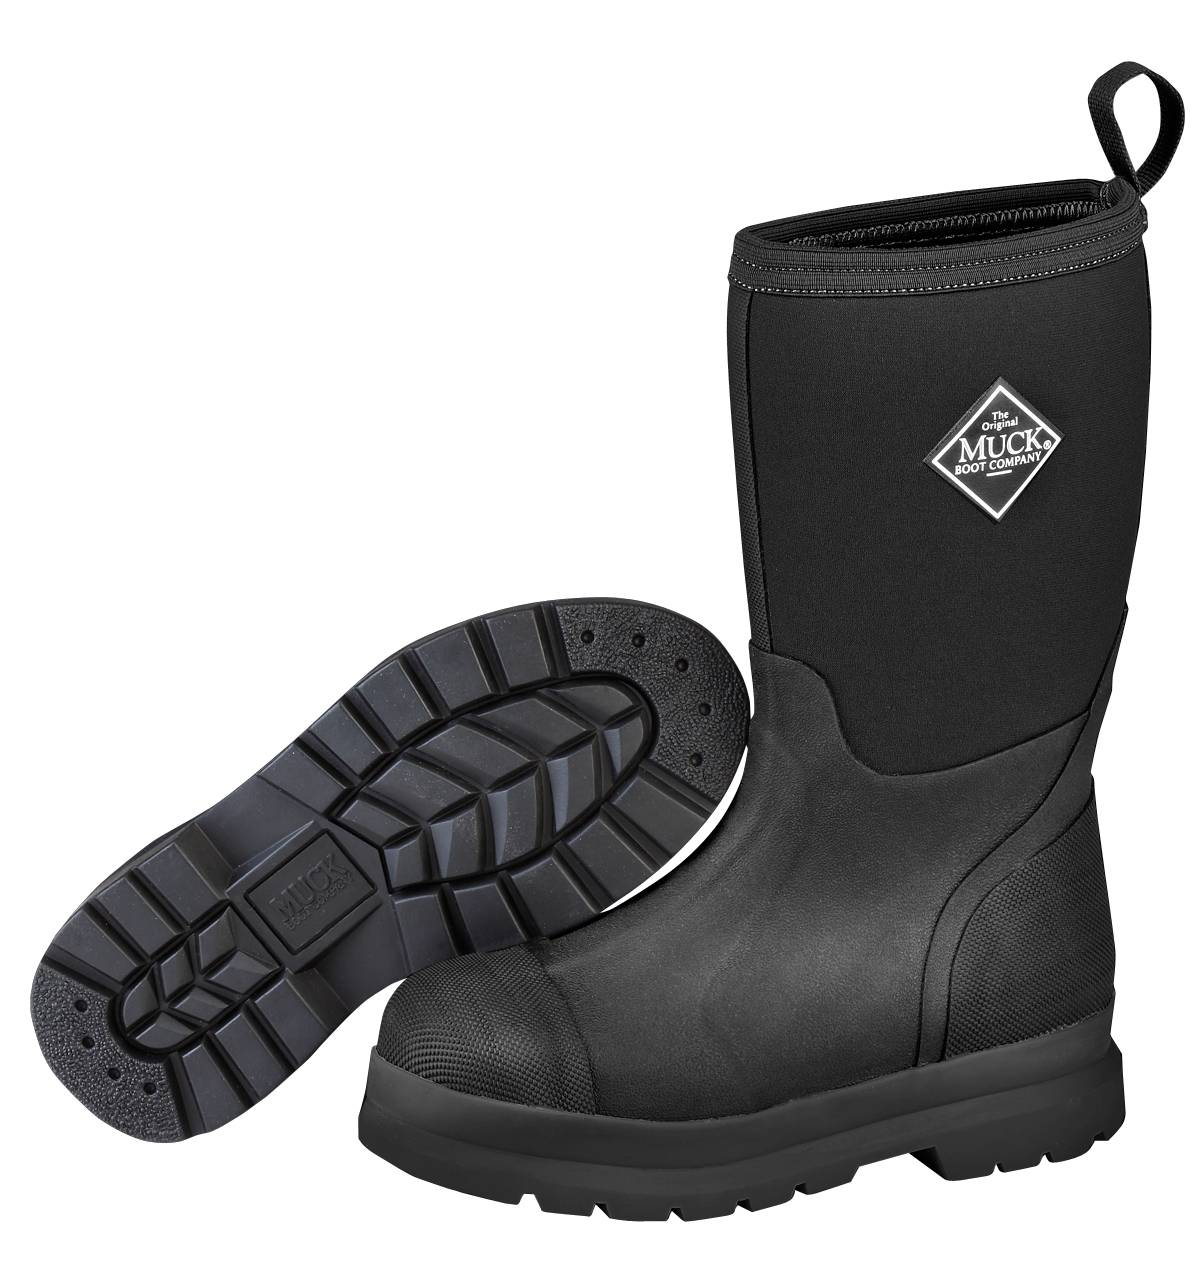 Muck Boots Childs Chore - Black